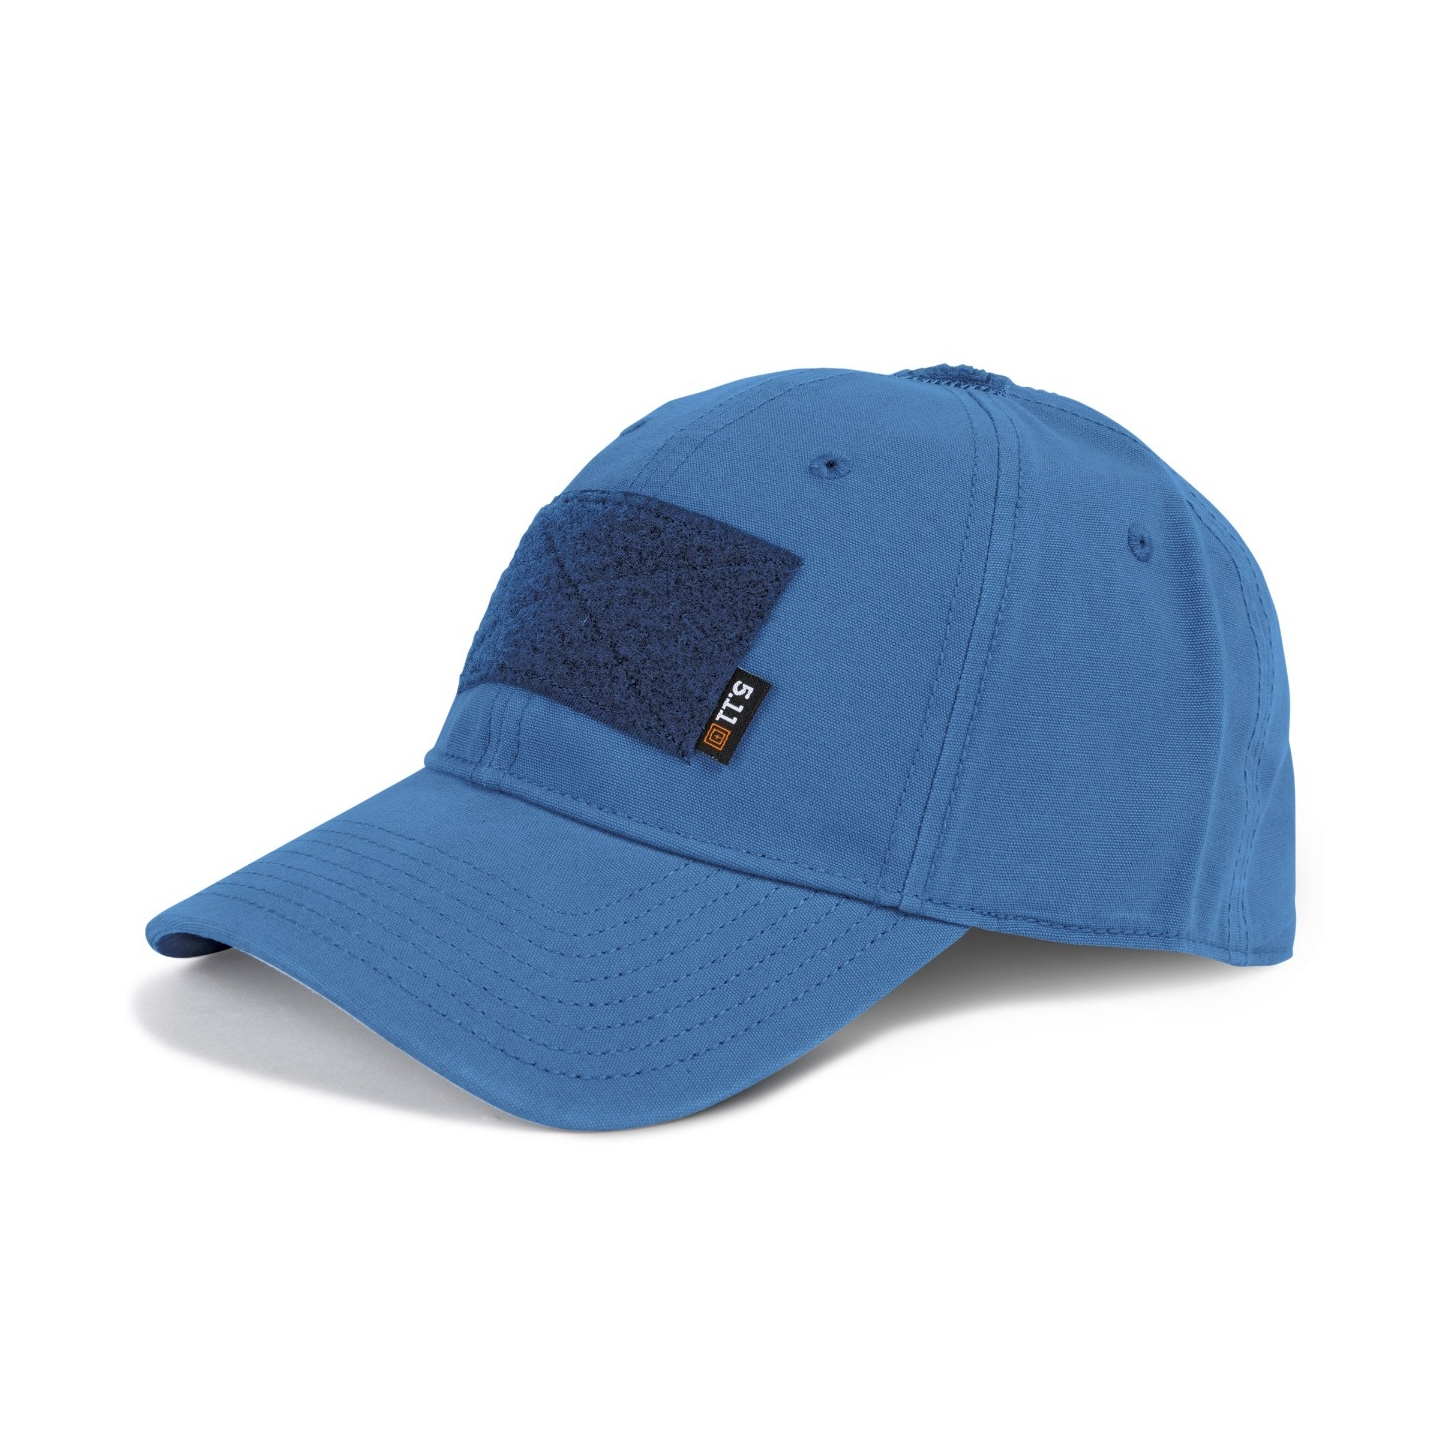 5.11 Tactical Men's Flag Bearer Cap thumbnail